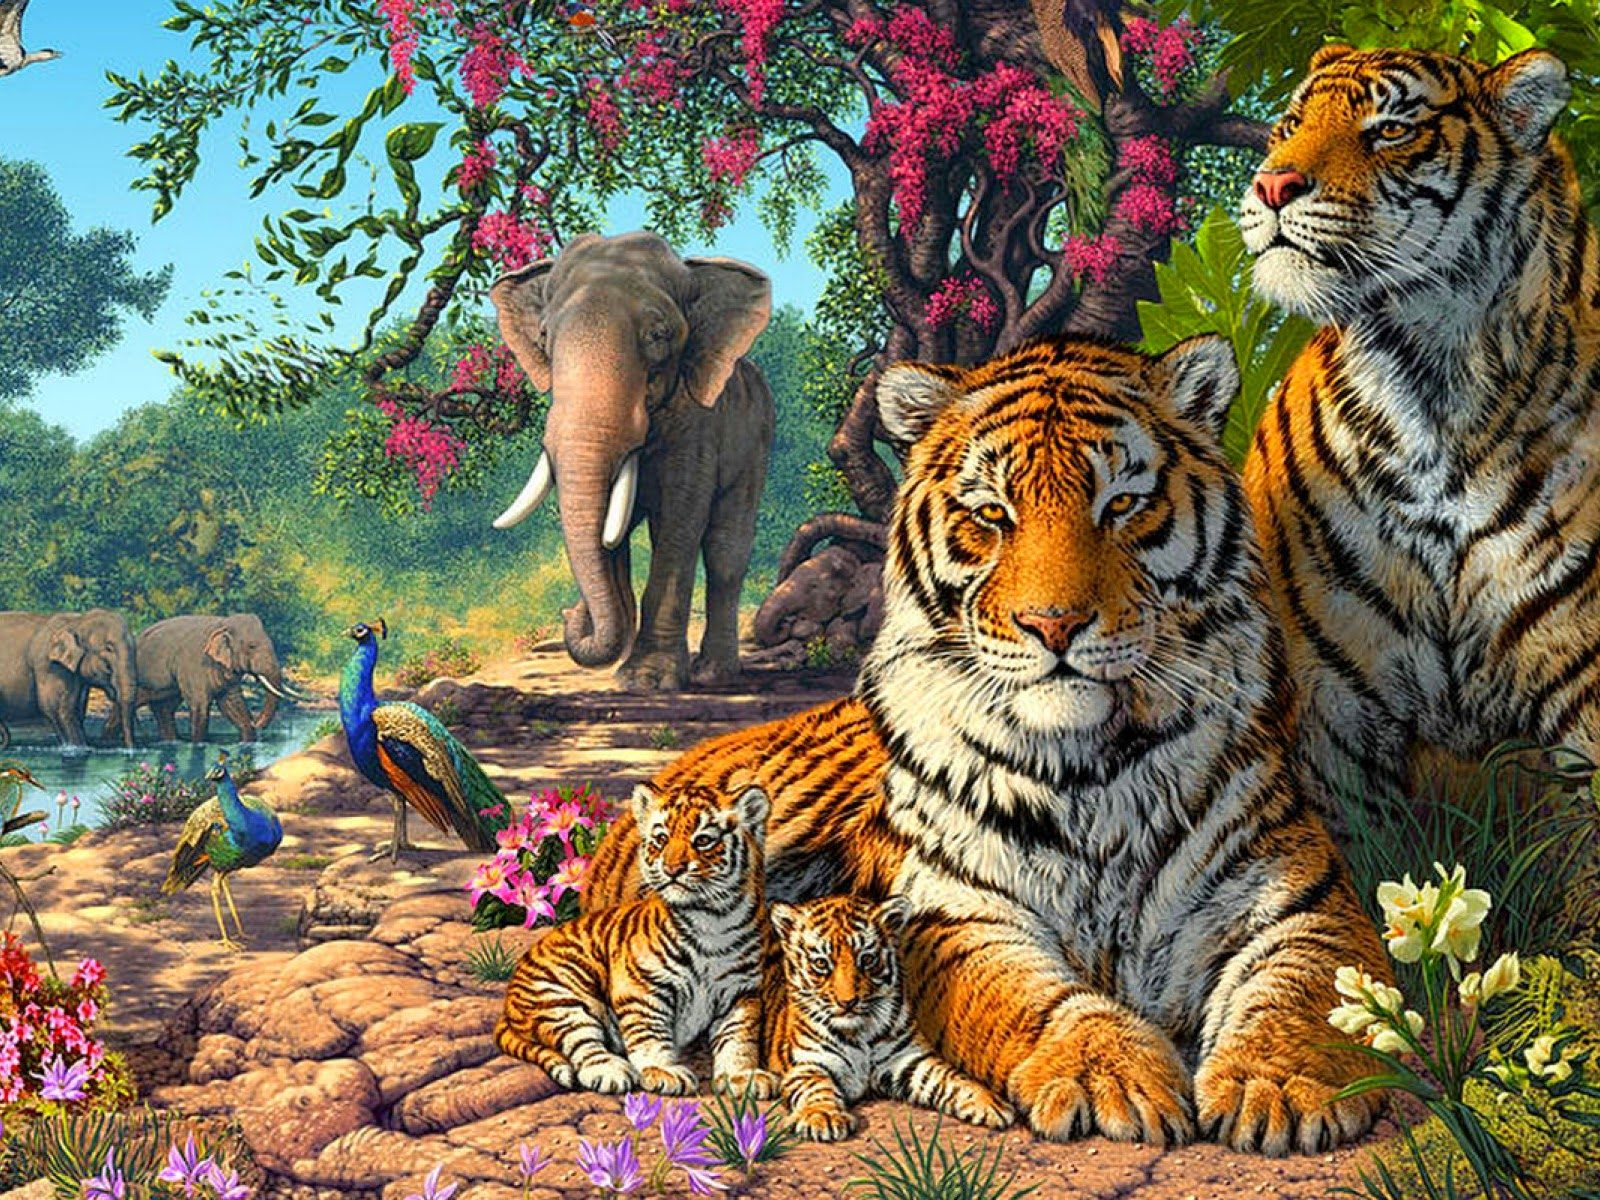 Wallpaper Hd For Desktop Full Screen Cute Tigers Family Exotic Birds Paun Elephants Jungle Nature Hd